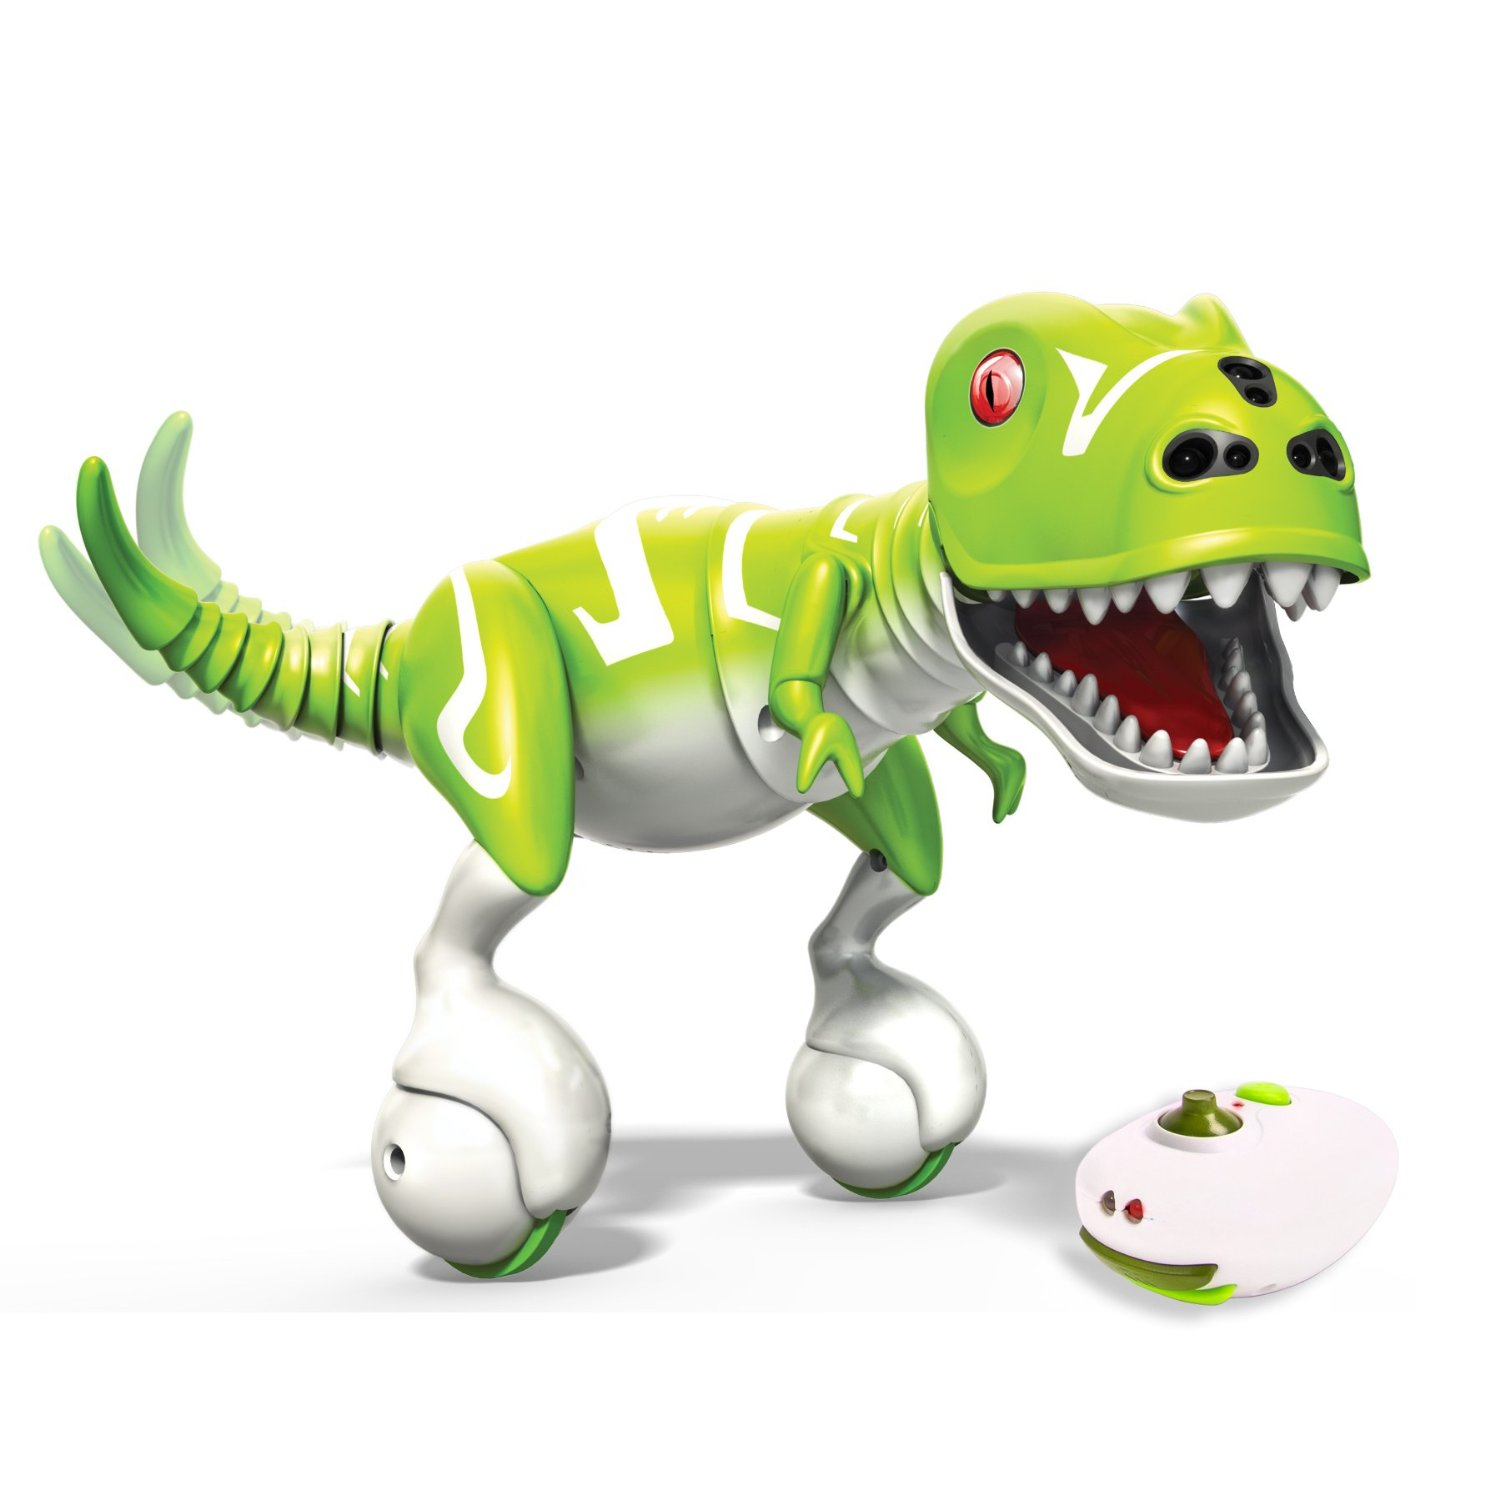 Control Him If You Can. Train Your Zoomer Dino